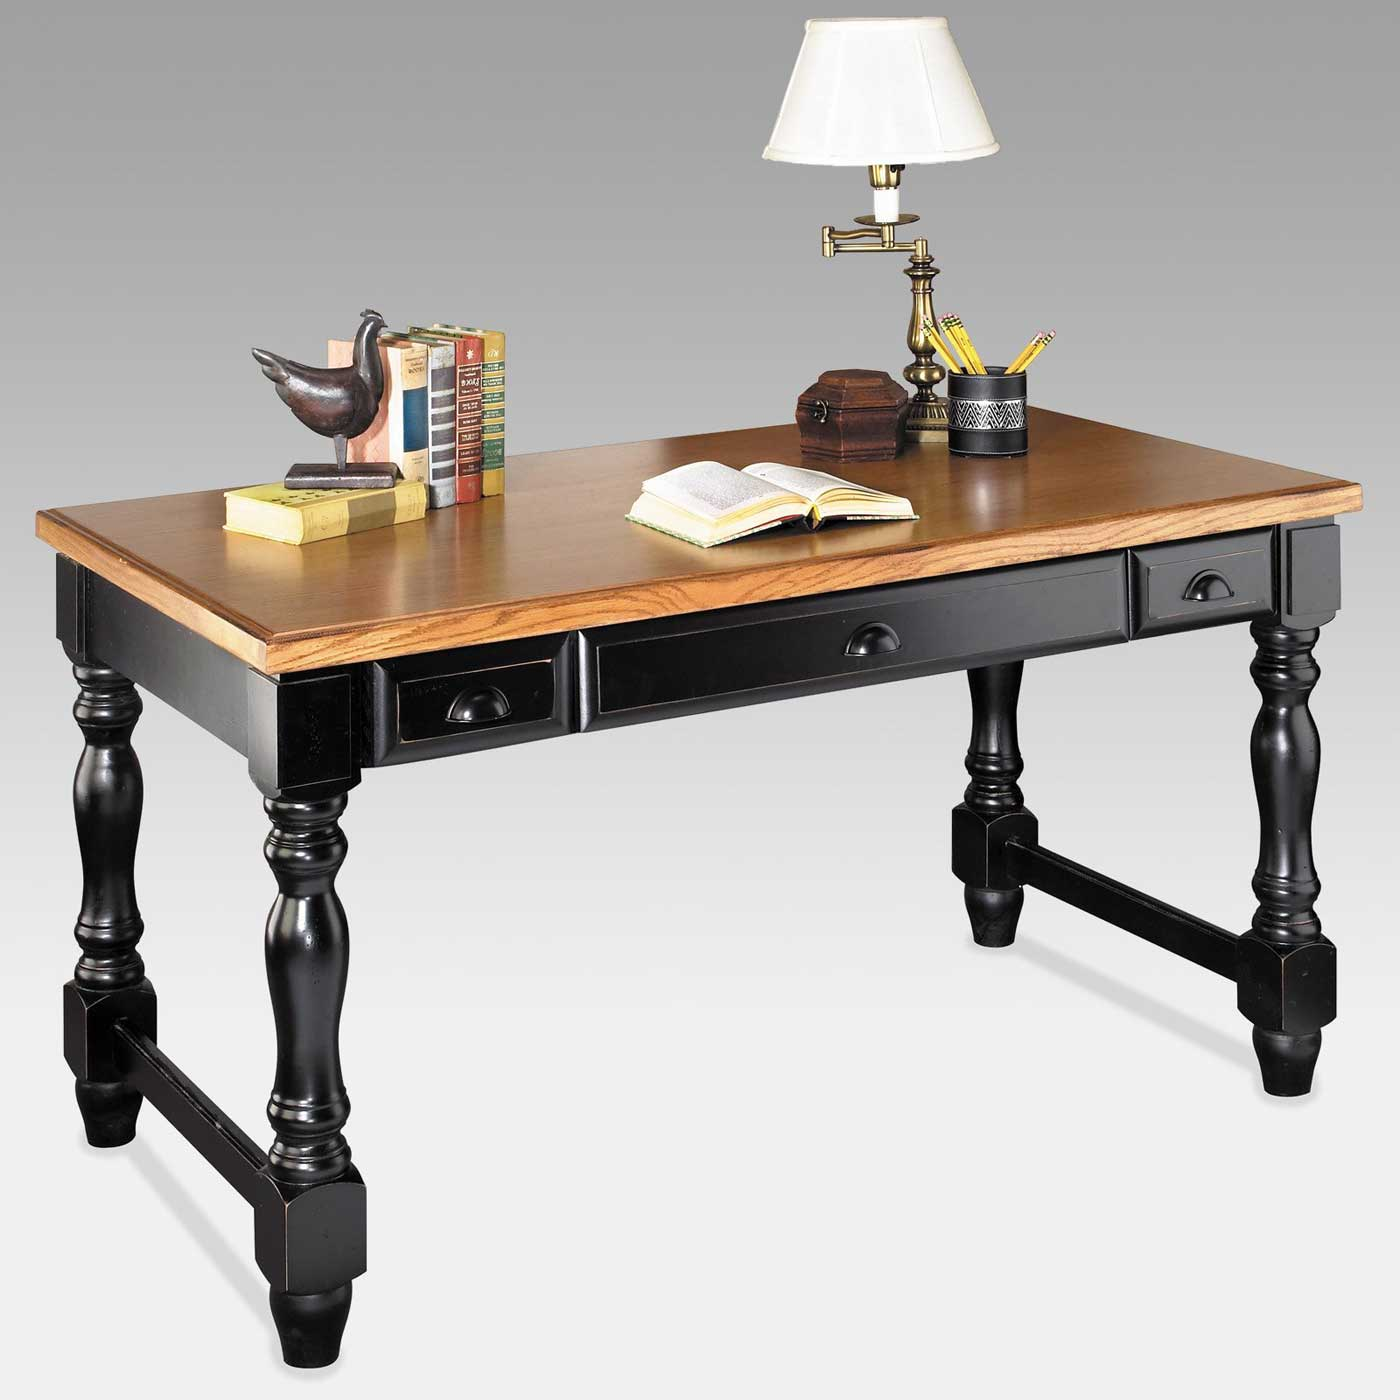 Southampton classic black writing desks from Kathy Ireland